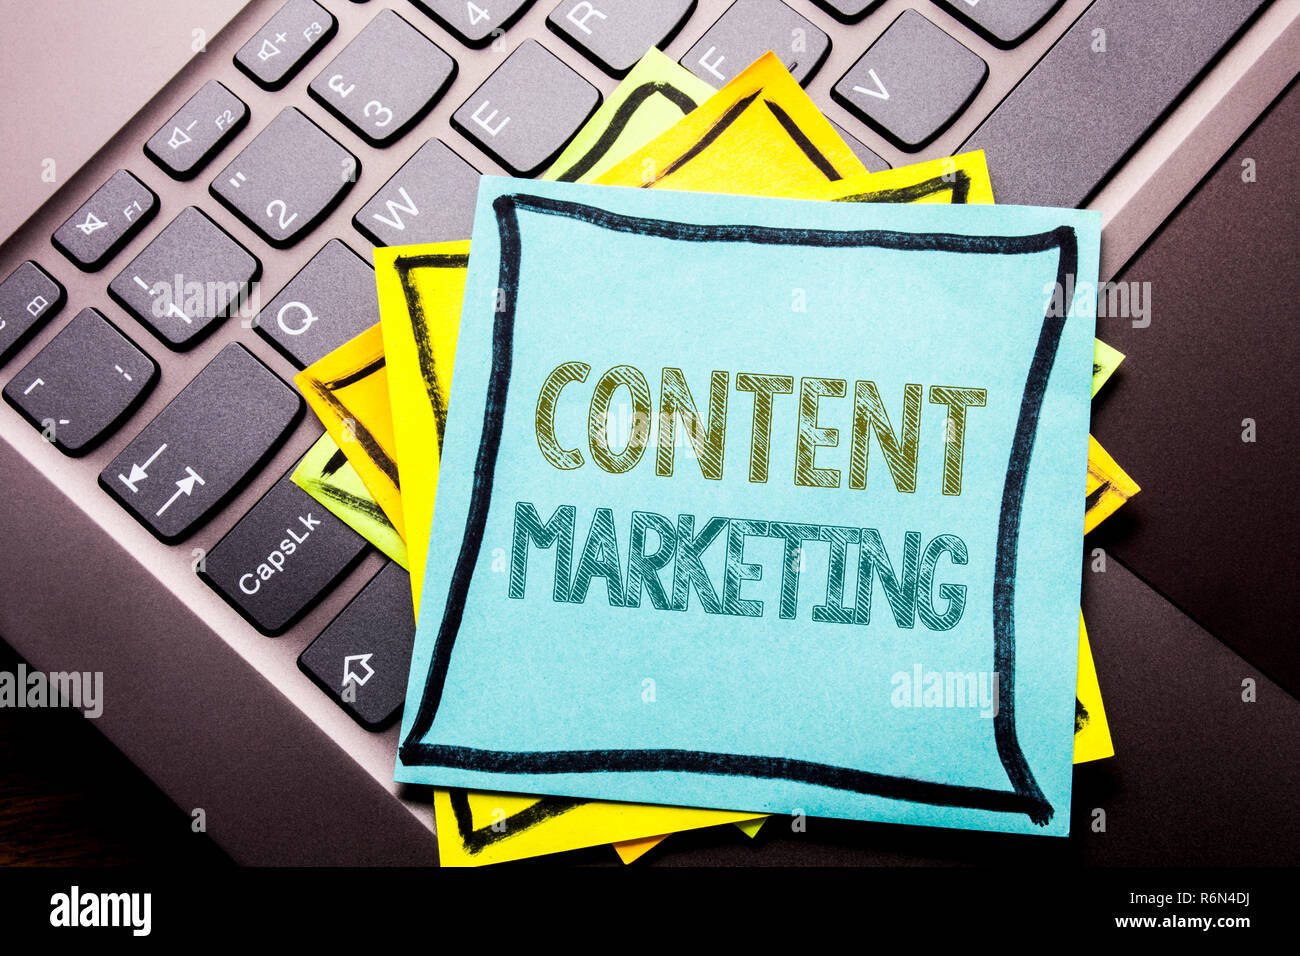 Conceptual hand writing text caption inspiration showing Content Marketing. Business concept for Online Media Plan written on sticky note paper on the dark keyboard background. Stock Photo